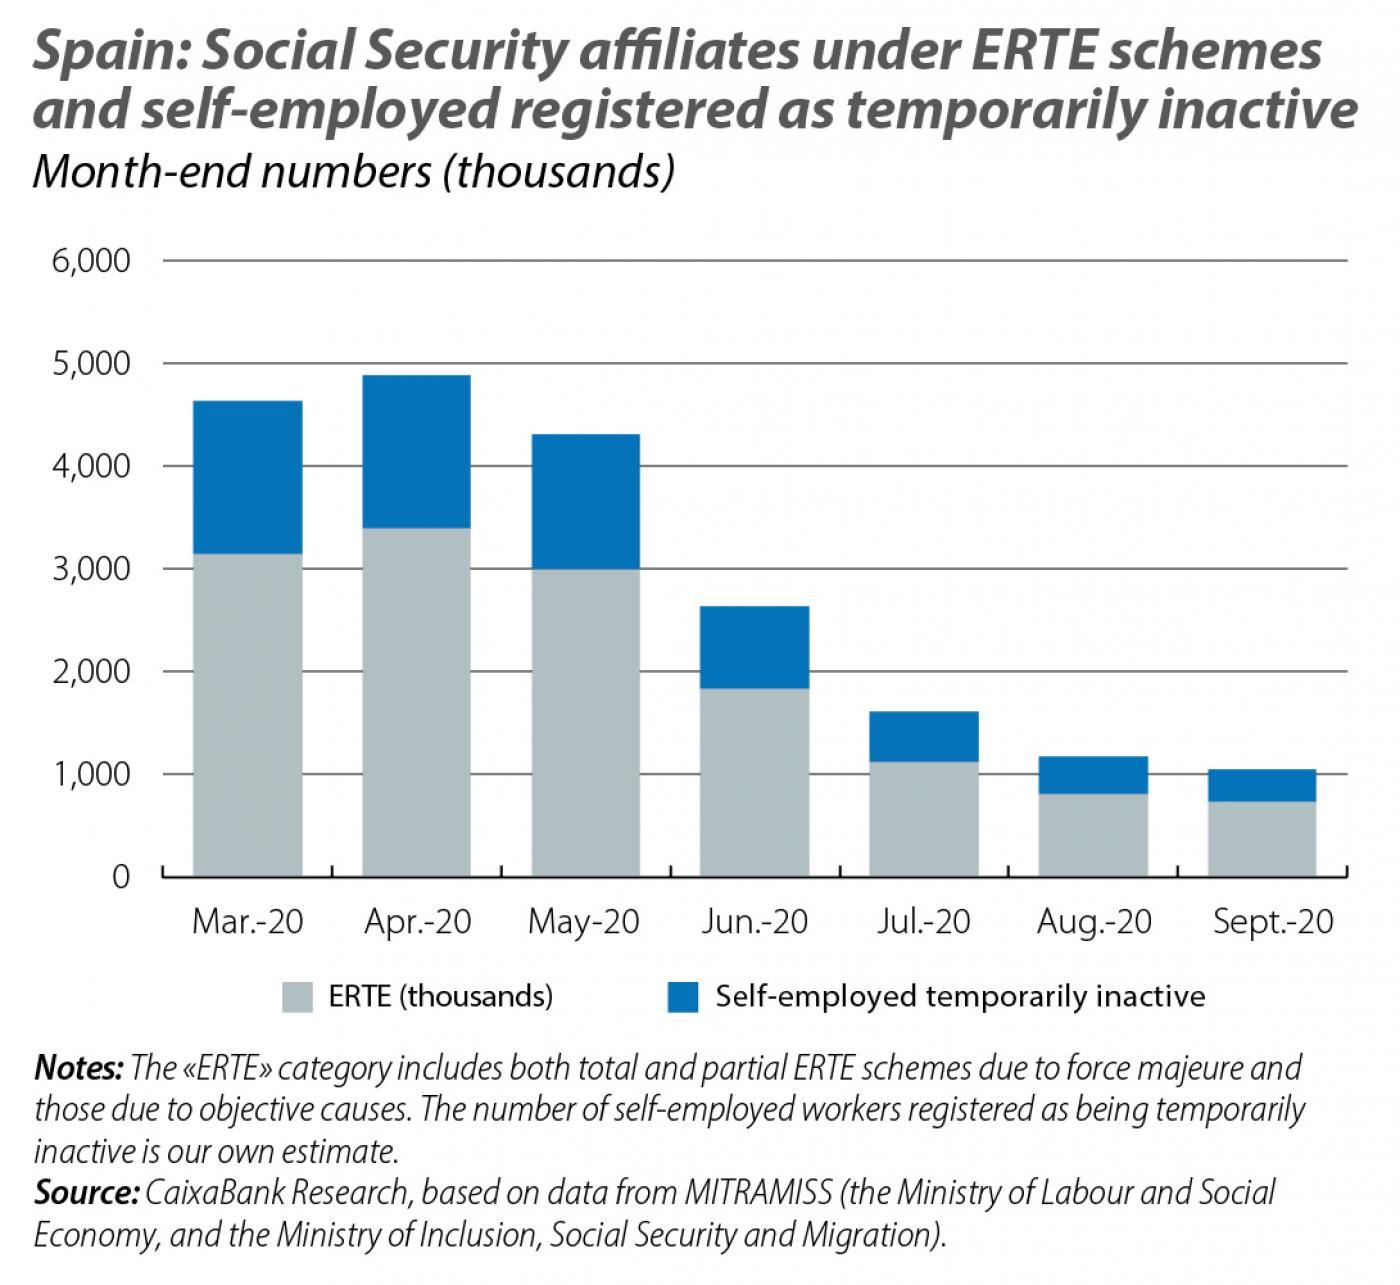 Spain: Social Security aliates under ERTE schemes and self-employed registered as temporarily inactive